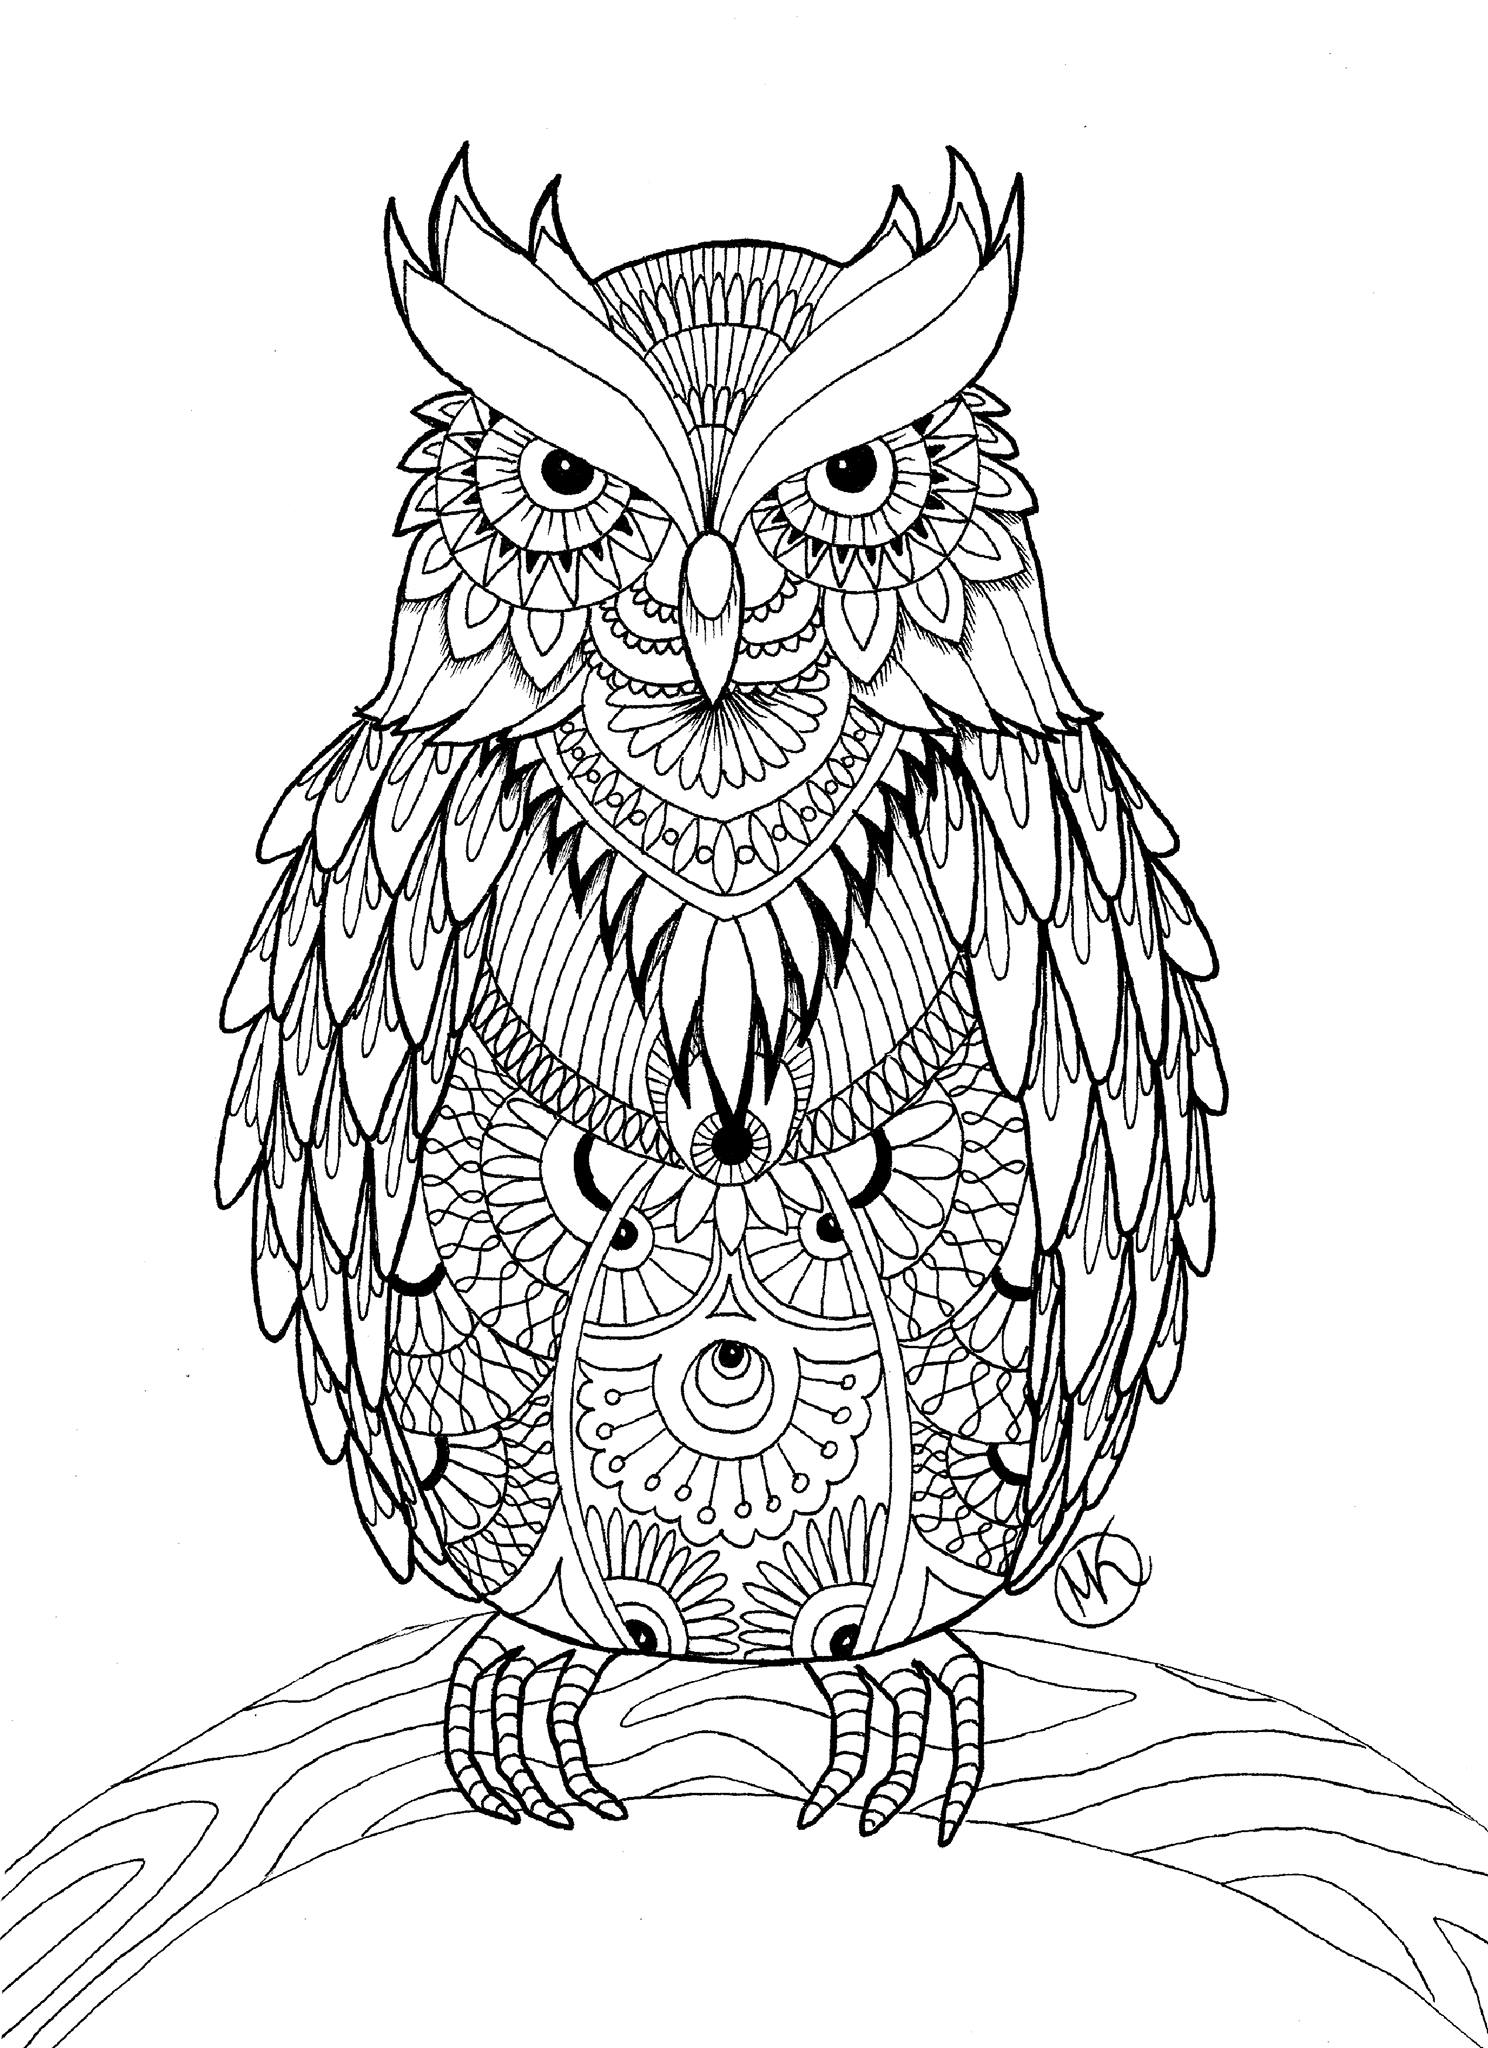 finished owl coloring pages owl pages that are already colored coloring pages coloring finished pages owl